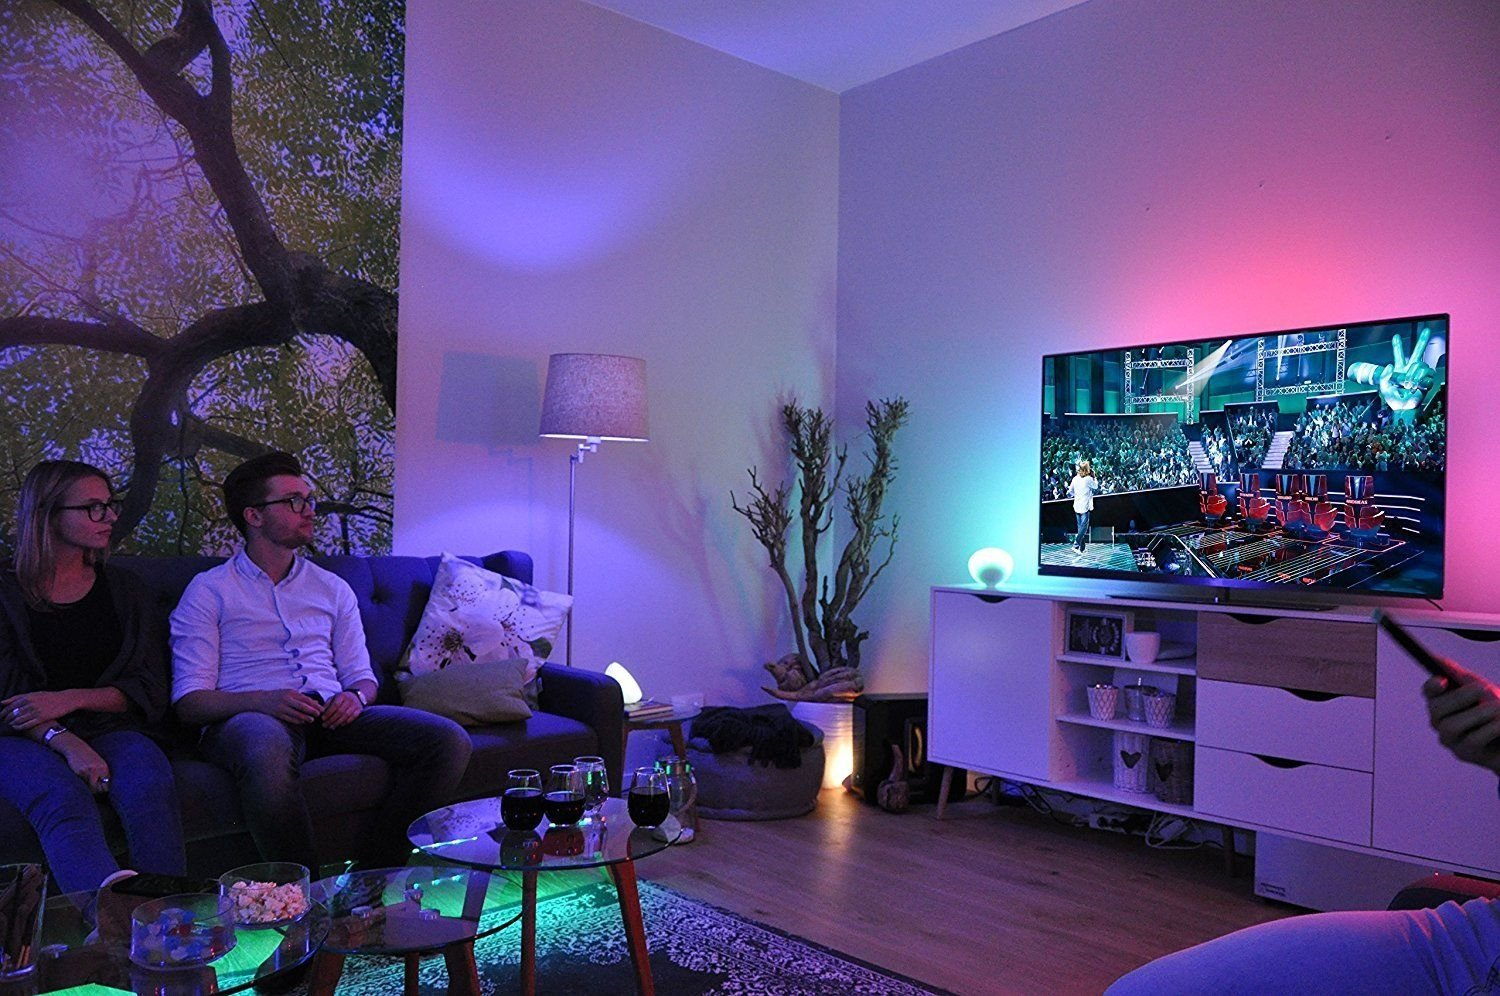 Philips HUE Esszimmer Beleuchtung